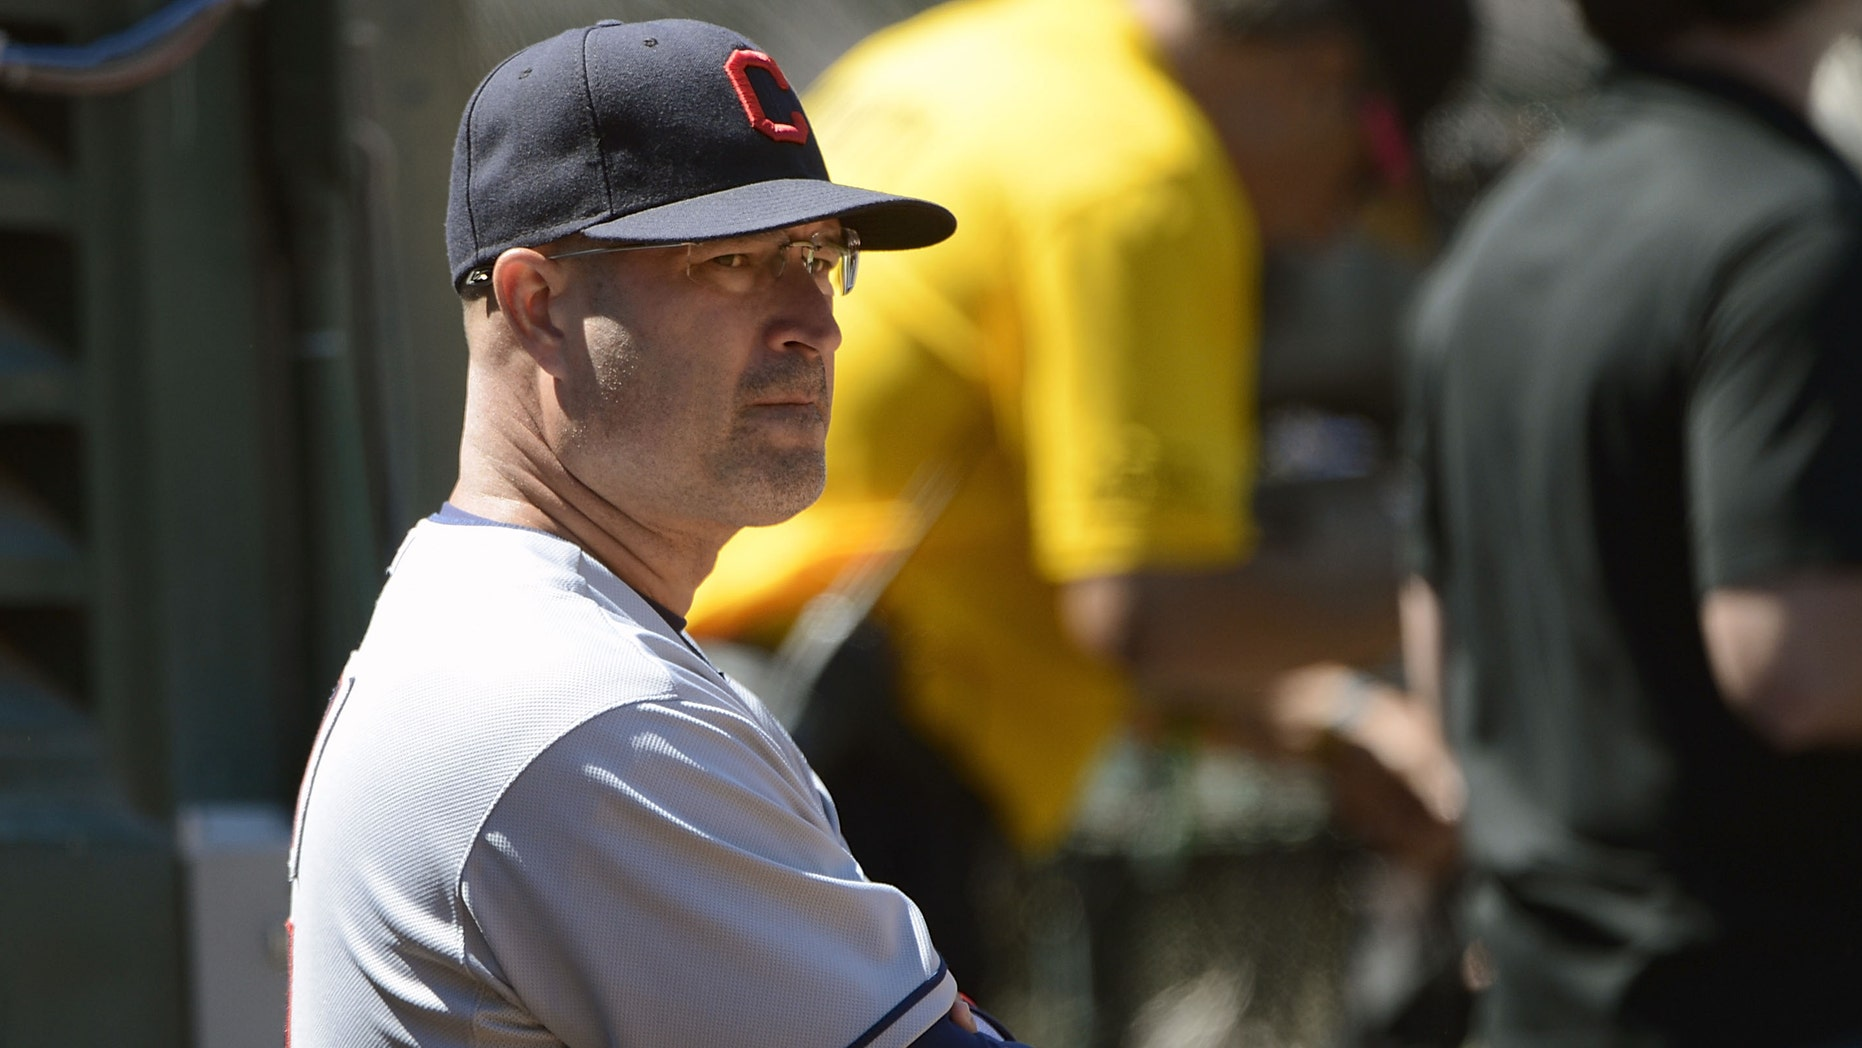 OAKLAND, CA - AUGUST 19:  Manager Manny Acta #11 of the Cleveland Indians looks on from the dugout in the six inning against the Oakland Athletics at O.co Coliseum on August 19, 2012 in Oakland, California.  (Photo by Thearon W. Henderson/Getty Images)